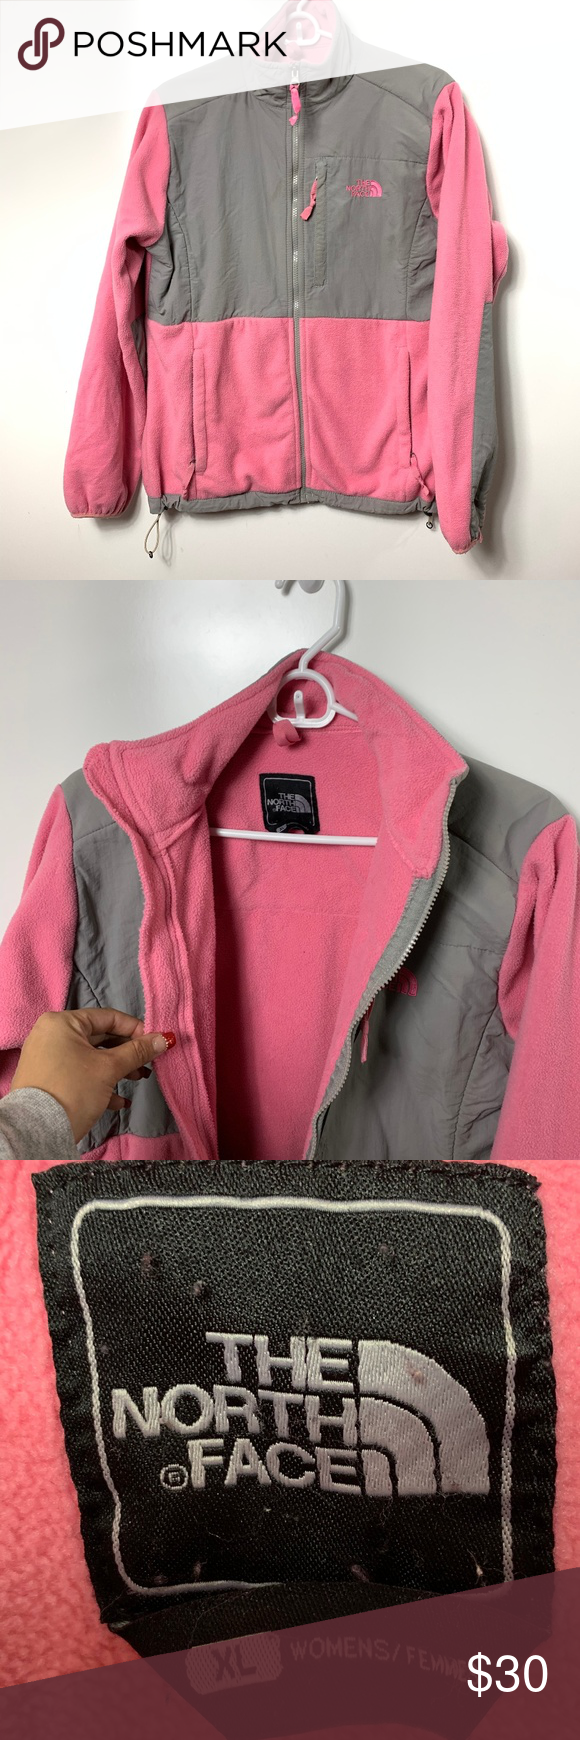 The North Face Jacket Fleece Pink Gray Womens Xl North Face Jacket The North Face Pink Grey [ 1740 x 580 Pixel ]